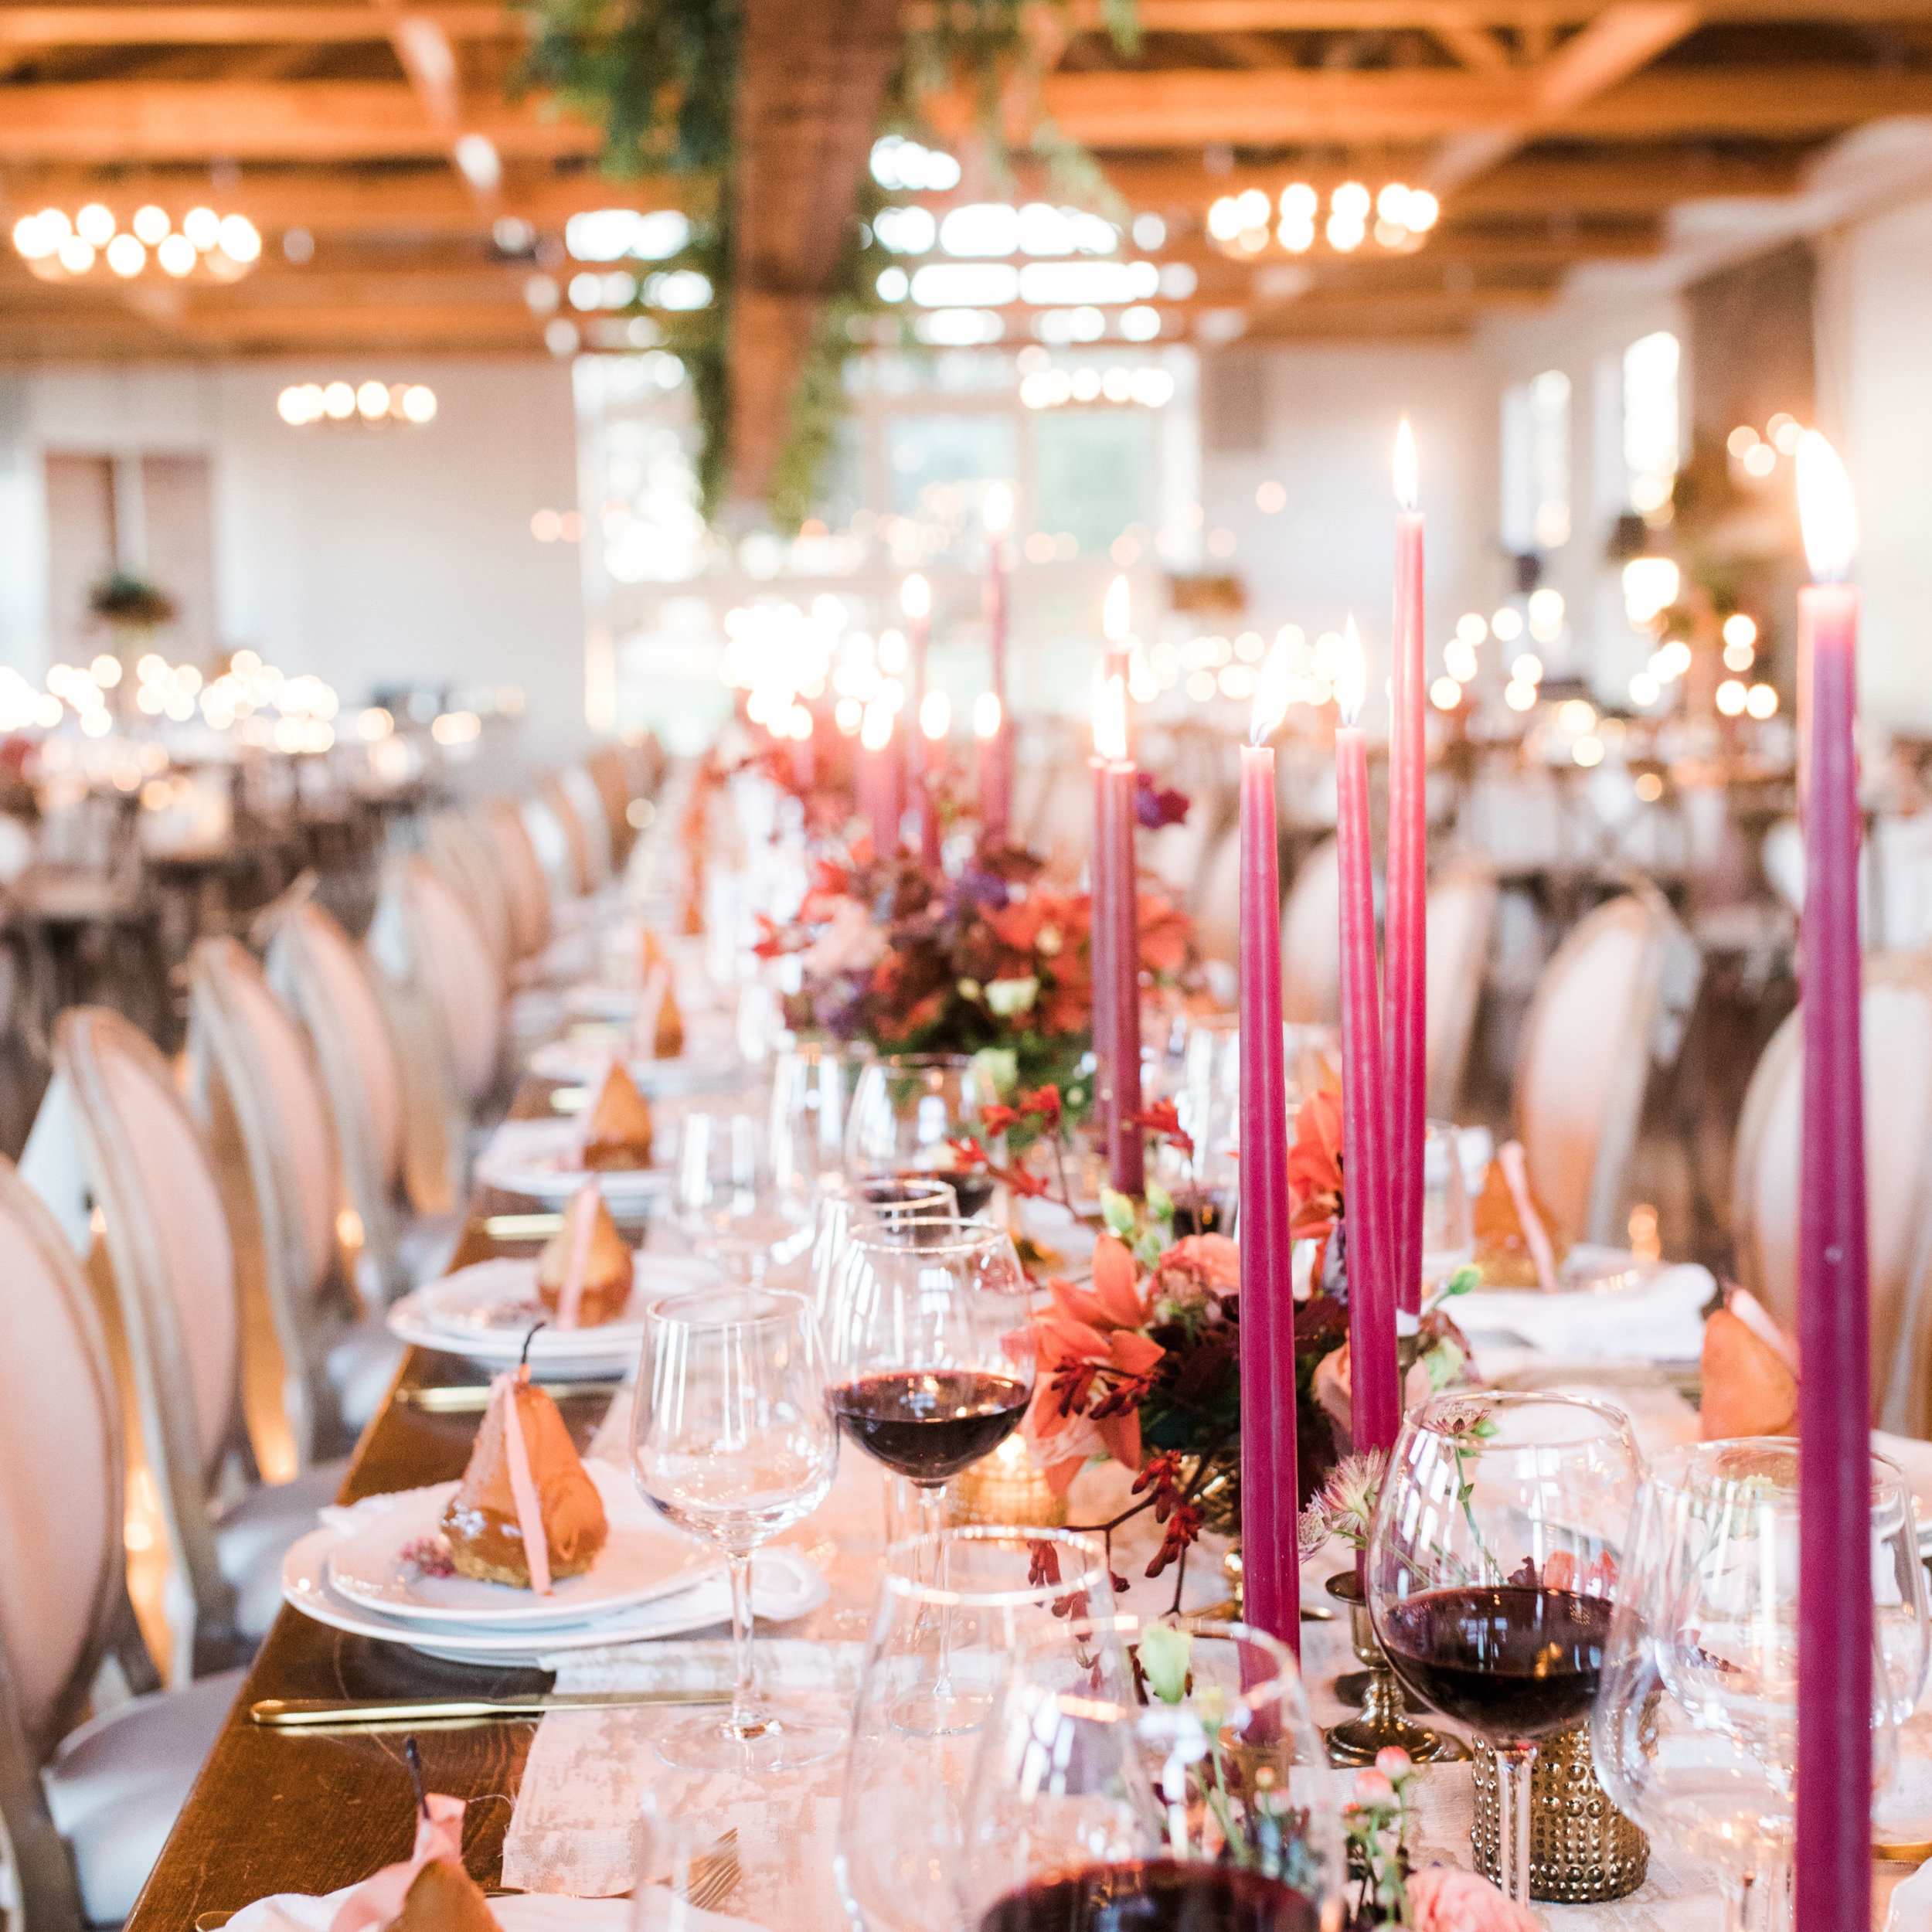 Style Me Pretty Feature - SHIMMERING CANDLIT PRAIRIE WEDDING AT PEAR TREE ESTATEPhoto | Sweet Darling Weddings